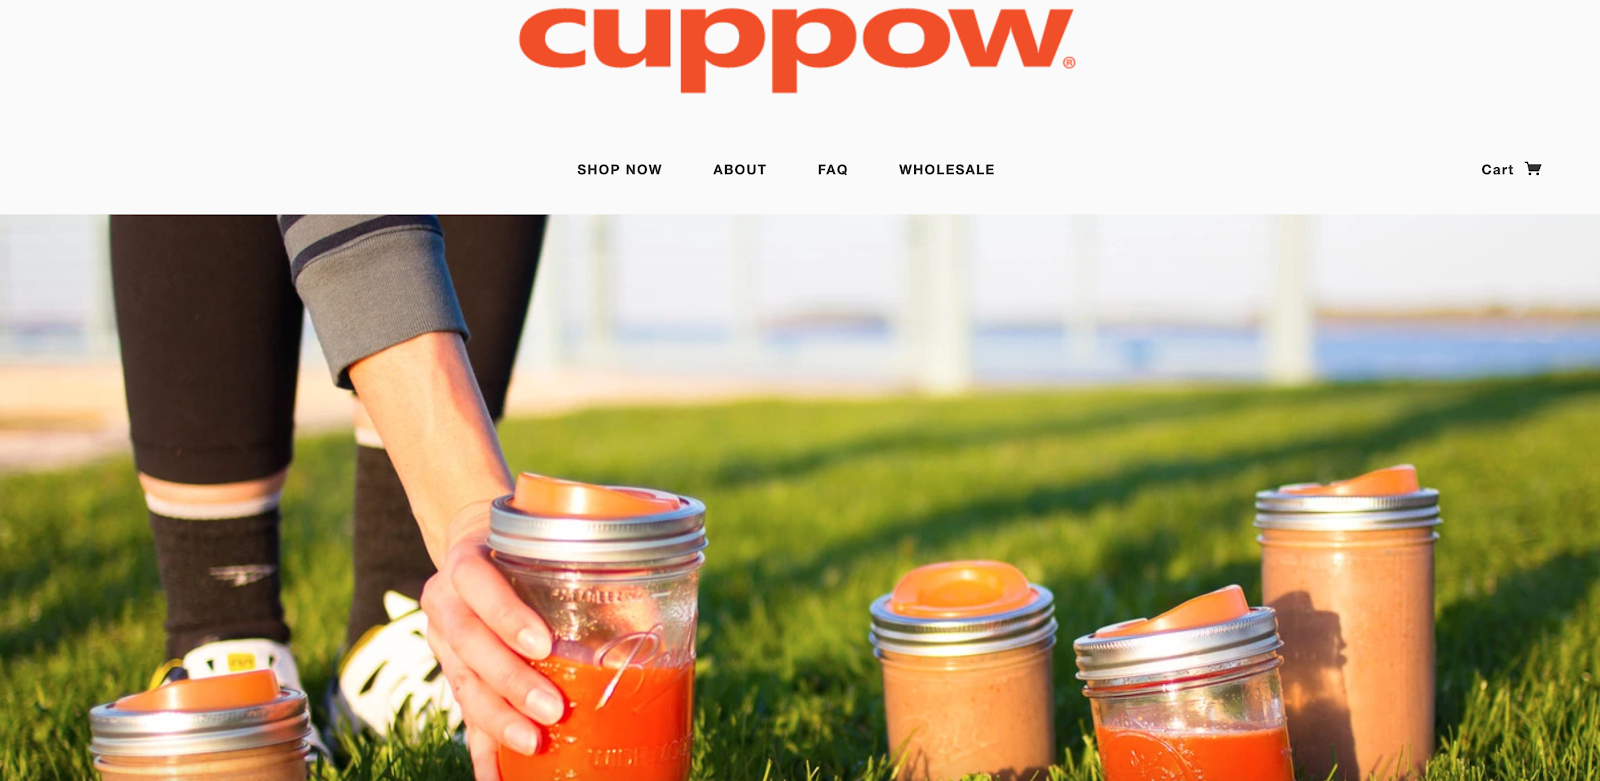 Cuppow homepage with Cuppow cups in the grass in the background